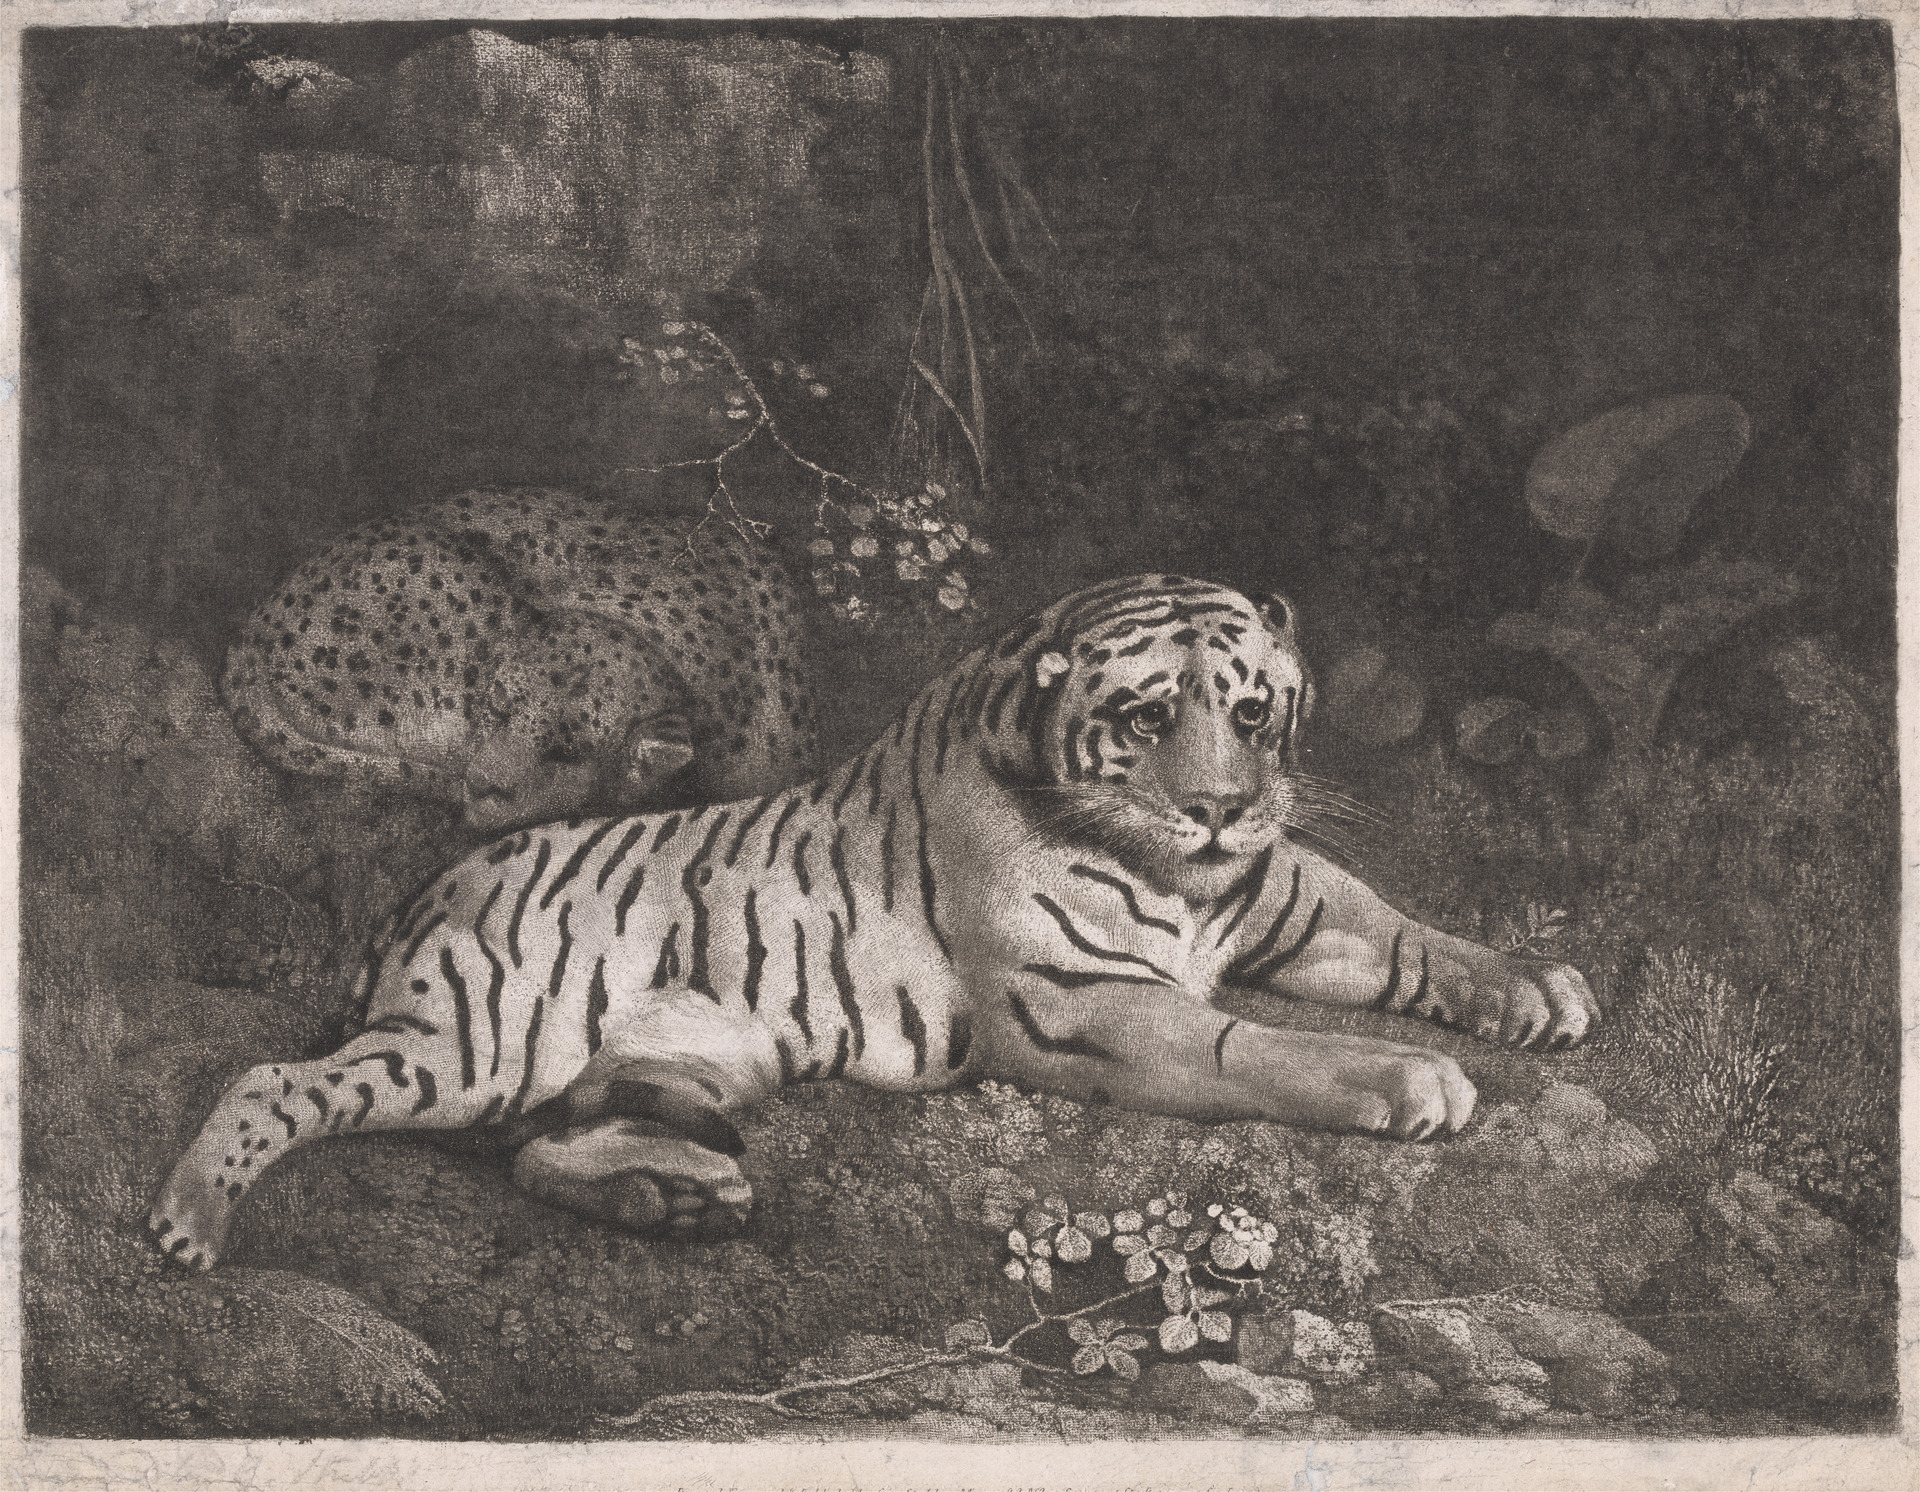 Print made by George Stubbs. A Tiger and a Sleeping Leopard. 1788.